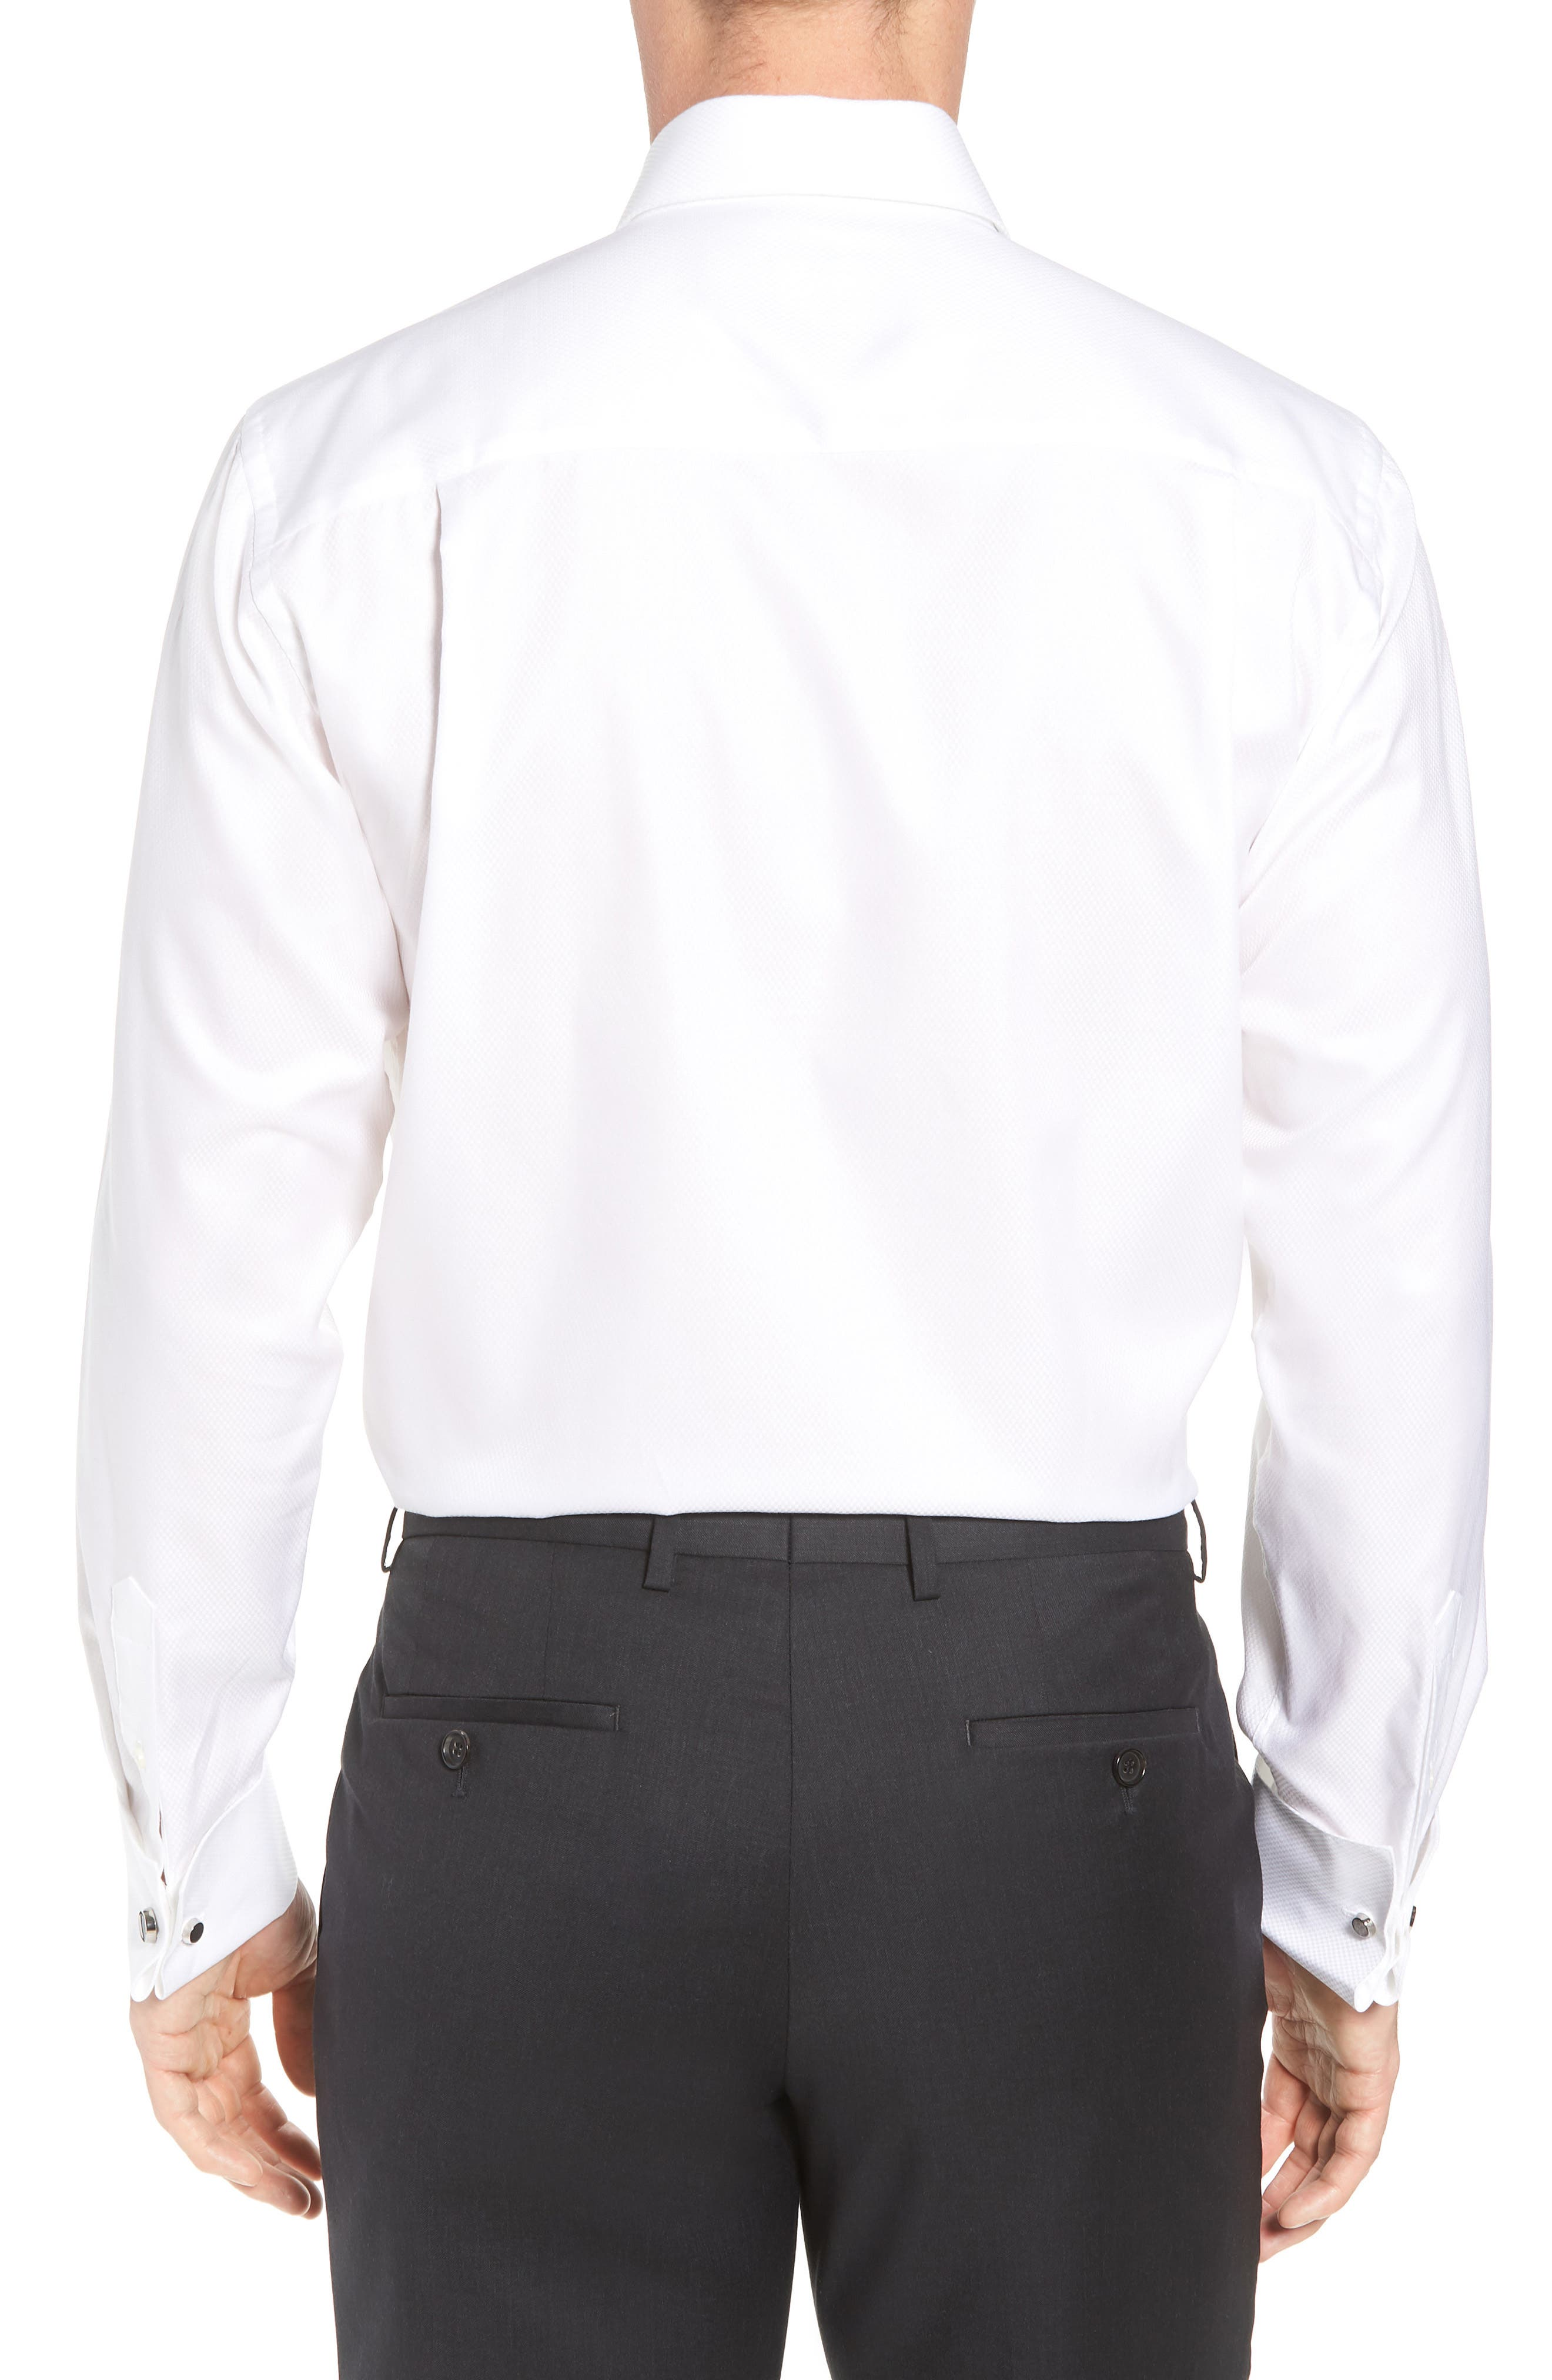 Regular Fit Solid French Cuff Tuxedo Shirt,                             Alternate thumbnail 4, color,                             WHITE / WHITE